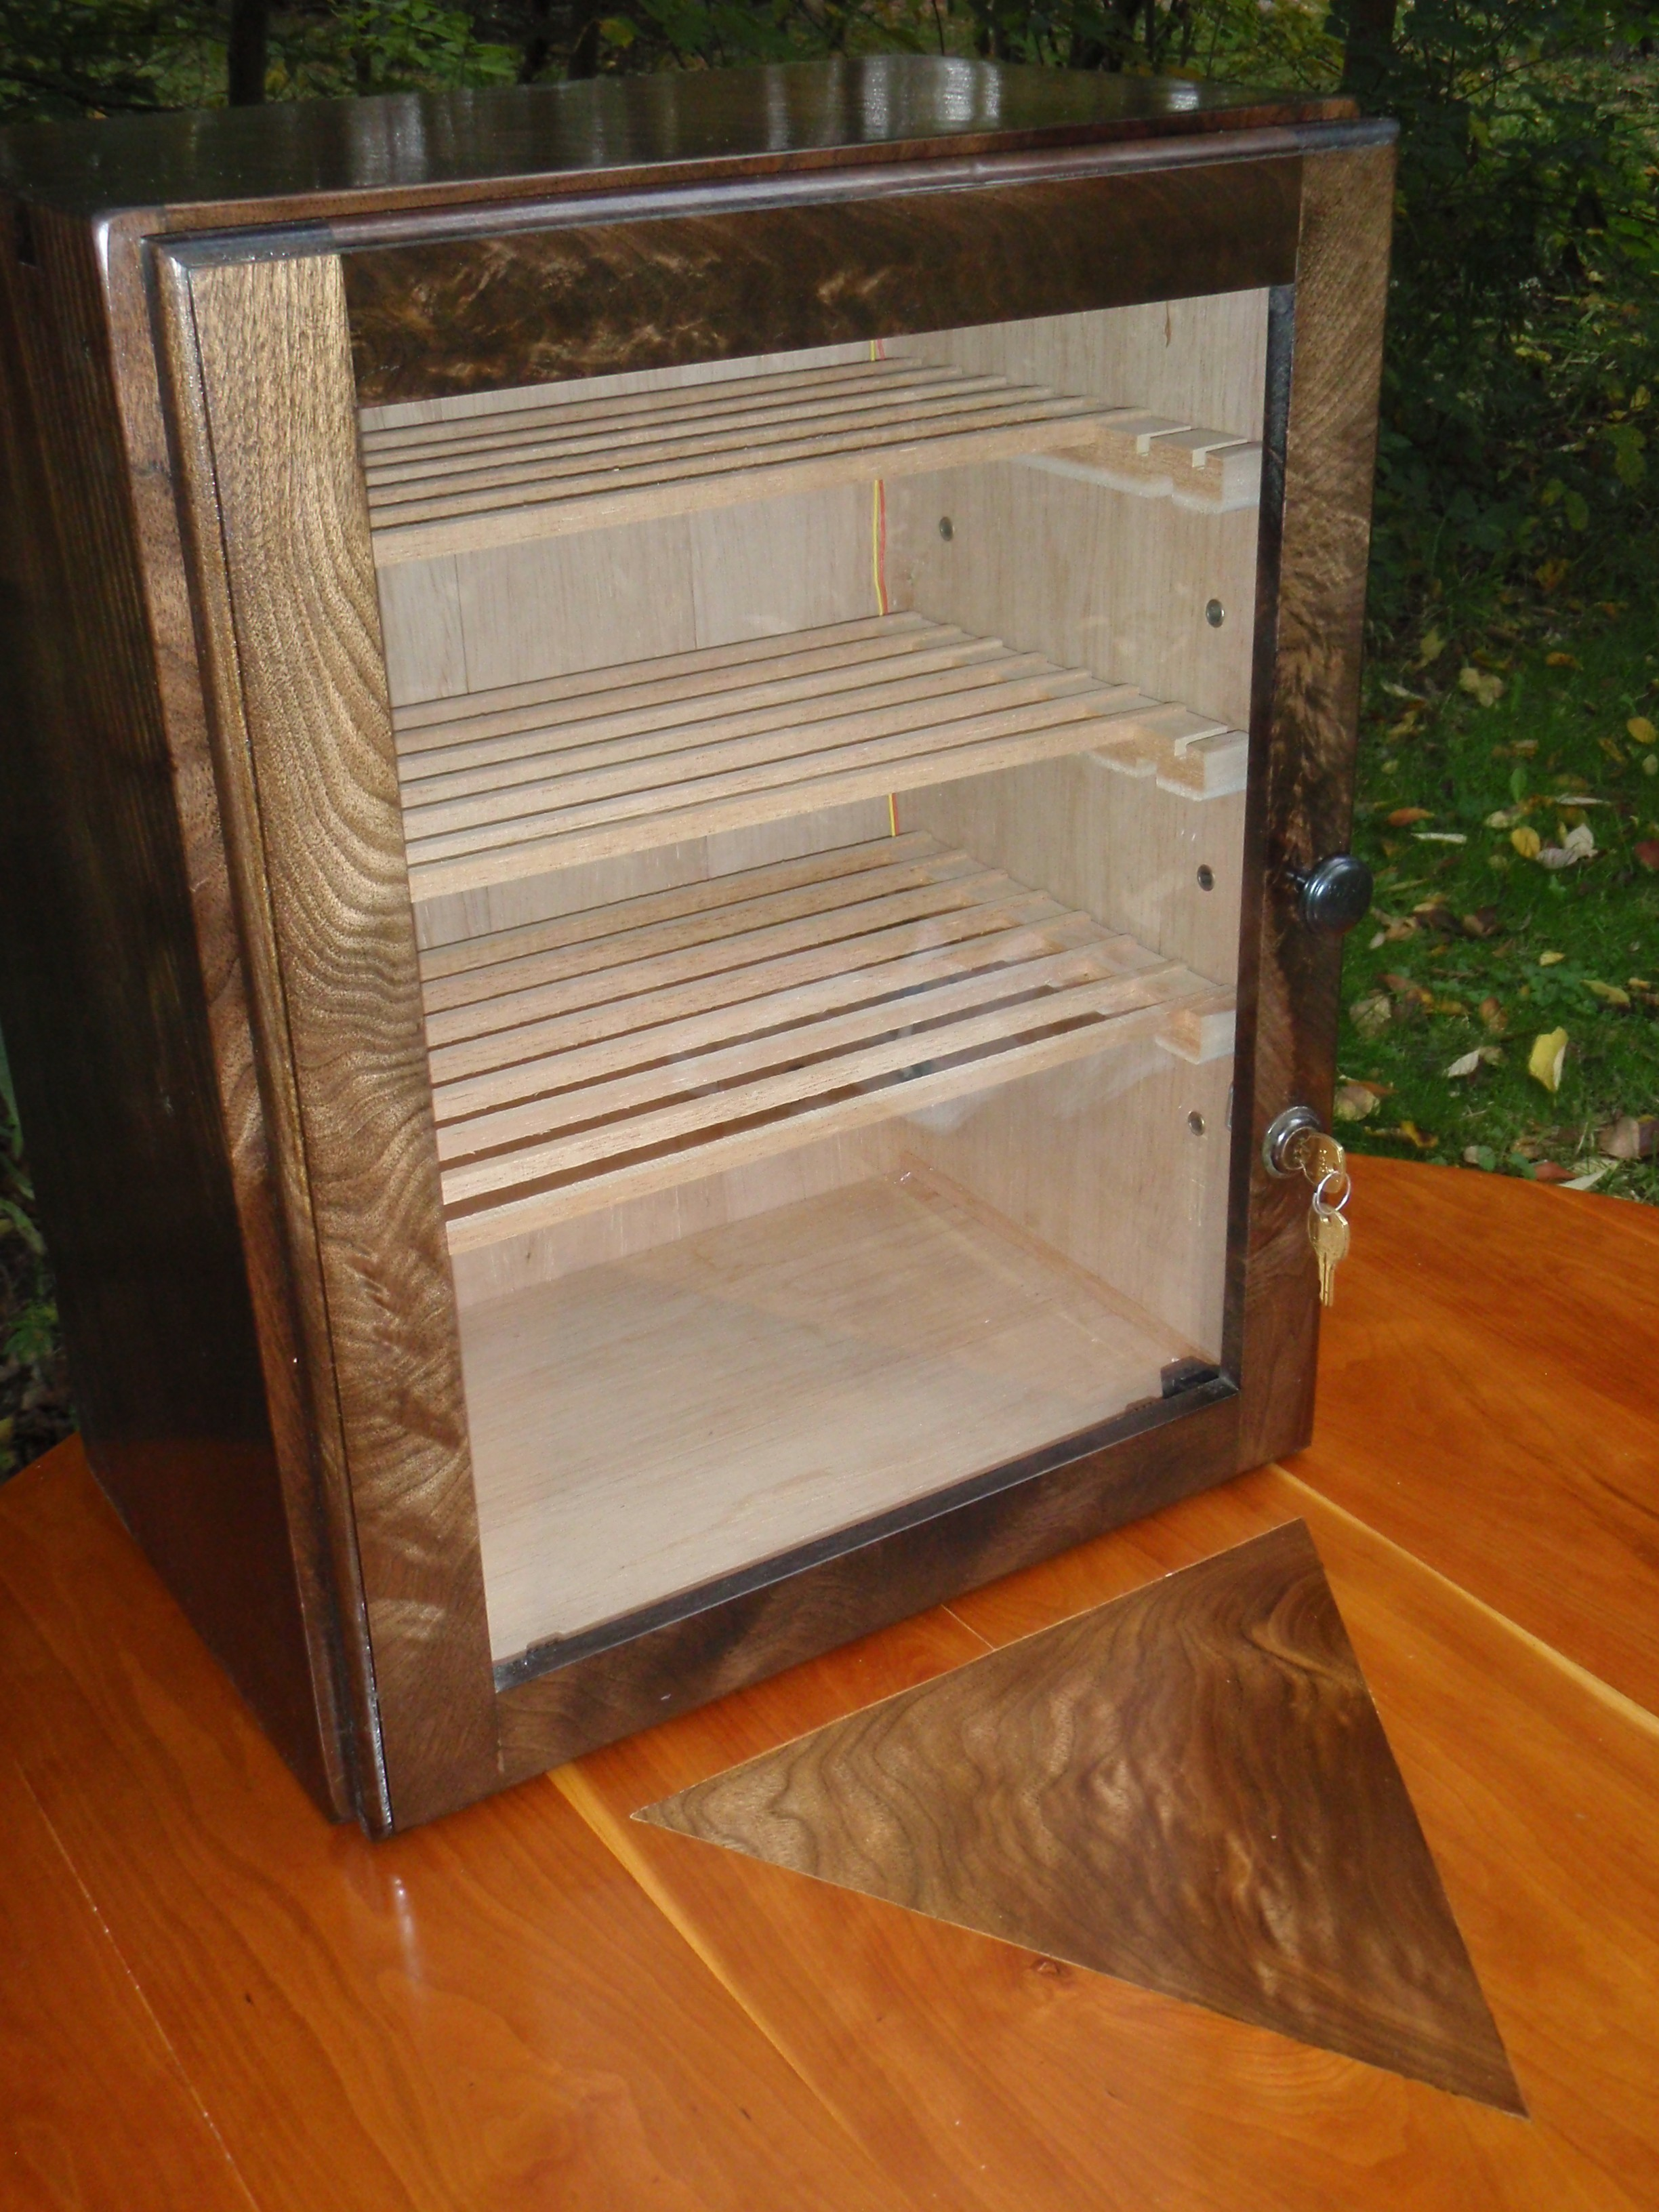 Unique Wine Humidor From Wooden Material: Four Levels Humidor With Key And Panel Wooden Wine Humidor Design